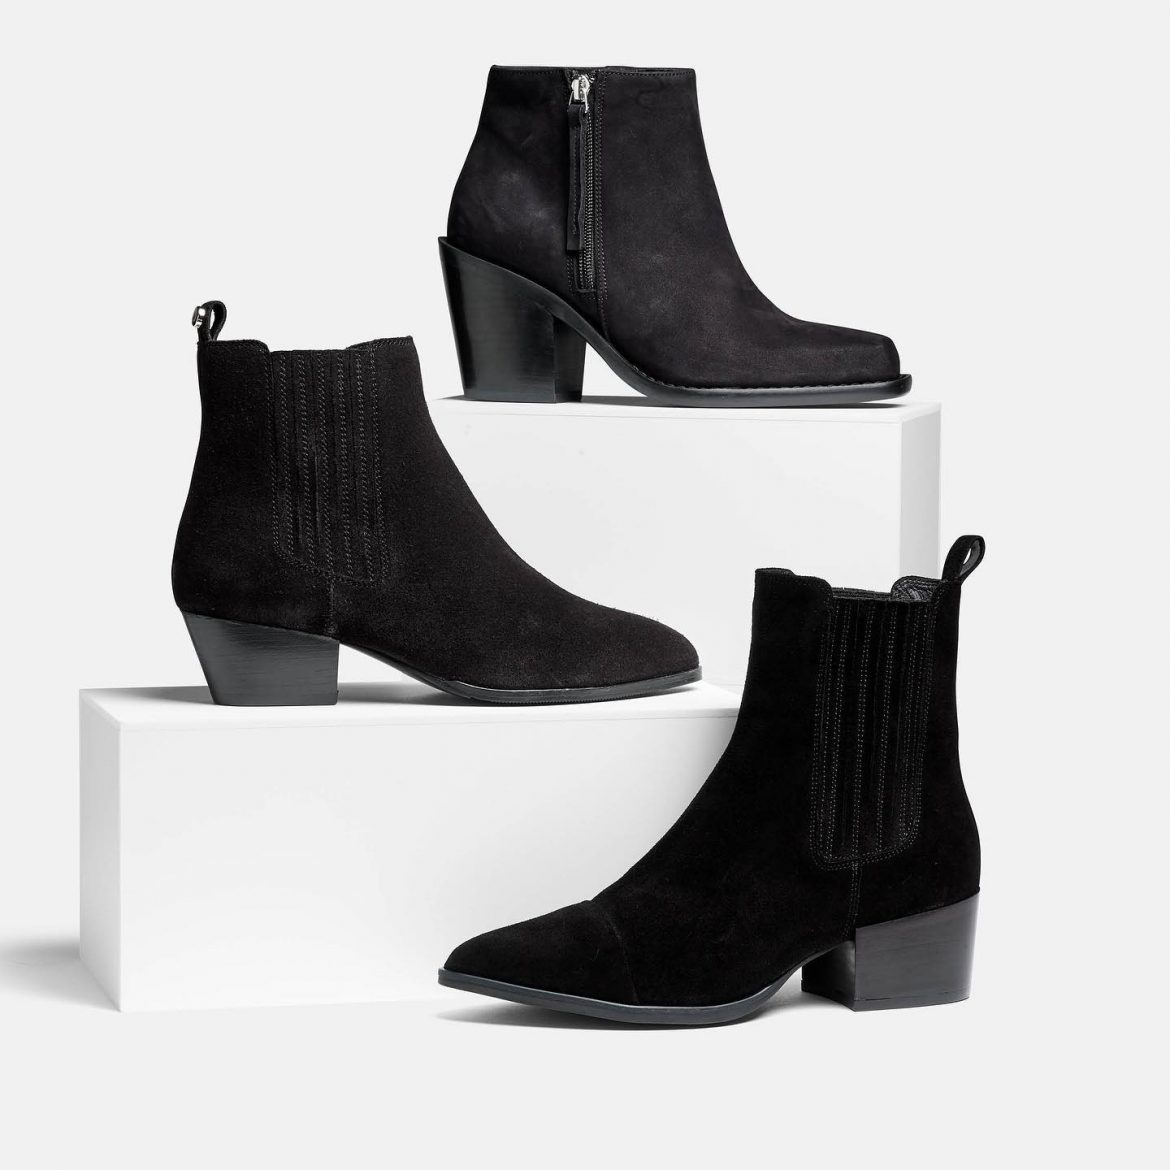 Revival-of-the-ankle-boots-These-are-from-Privé-@stockholmdgroup.fnaoh9b8d79a5029ab1cee4174cd9d45d9022oe5E00C291.jpeg